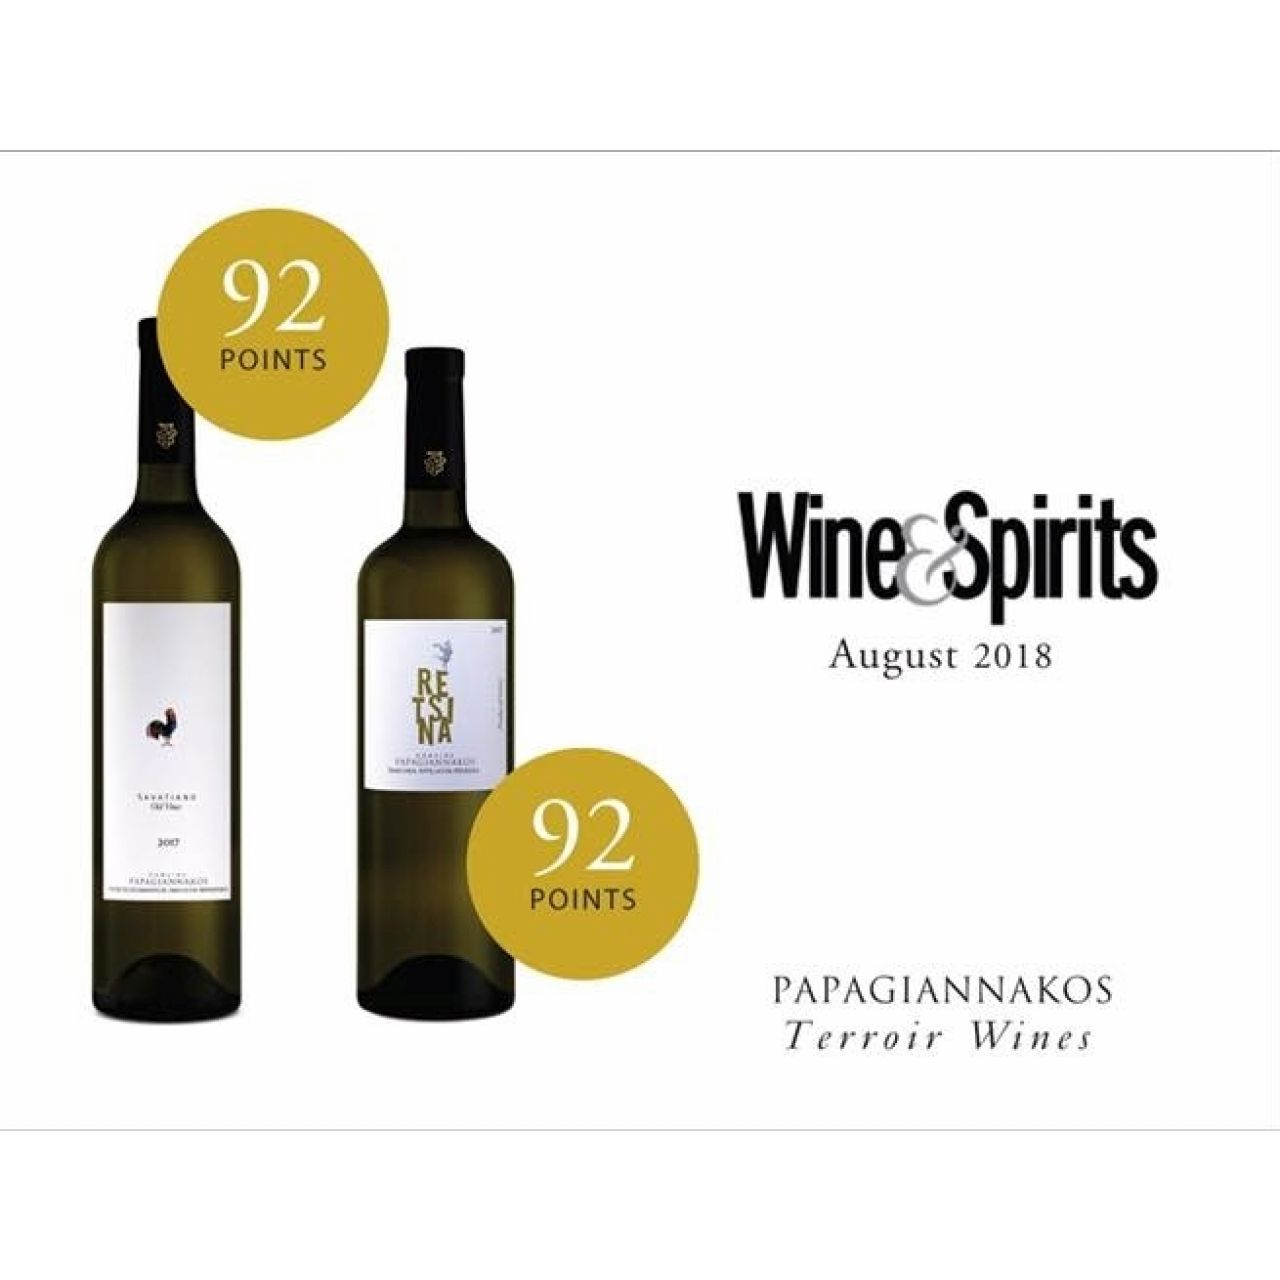 Vin Alb Savatiano Old Vines 2020 Papagiannakos